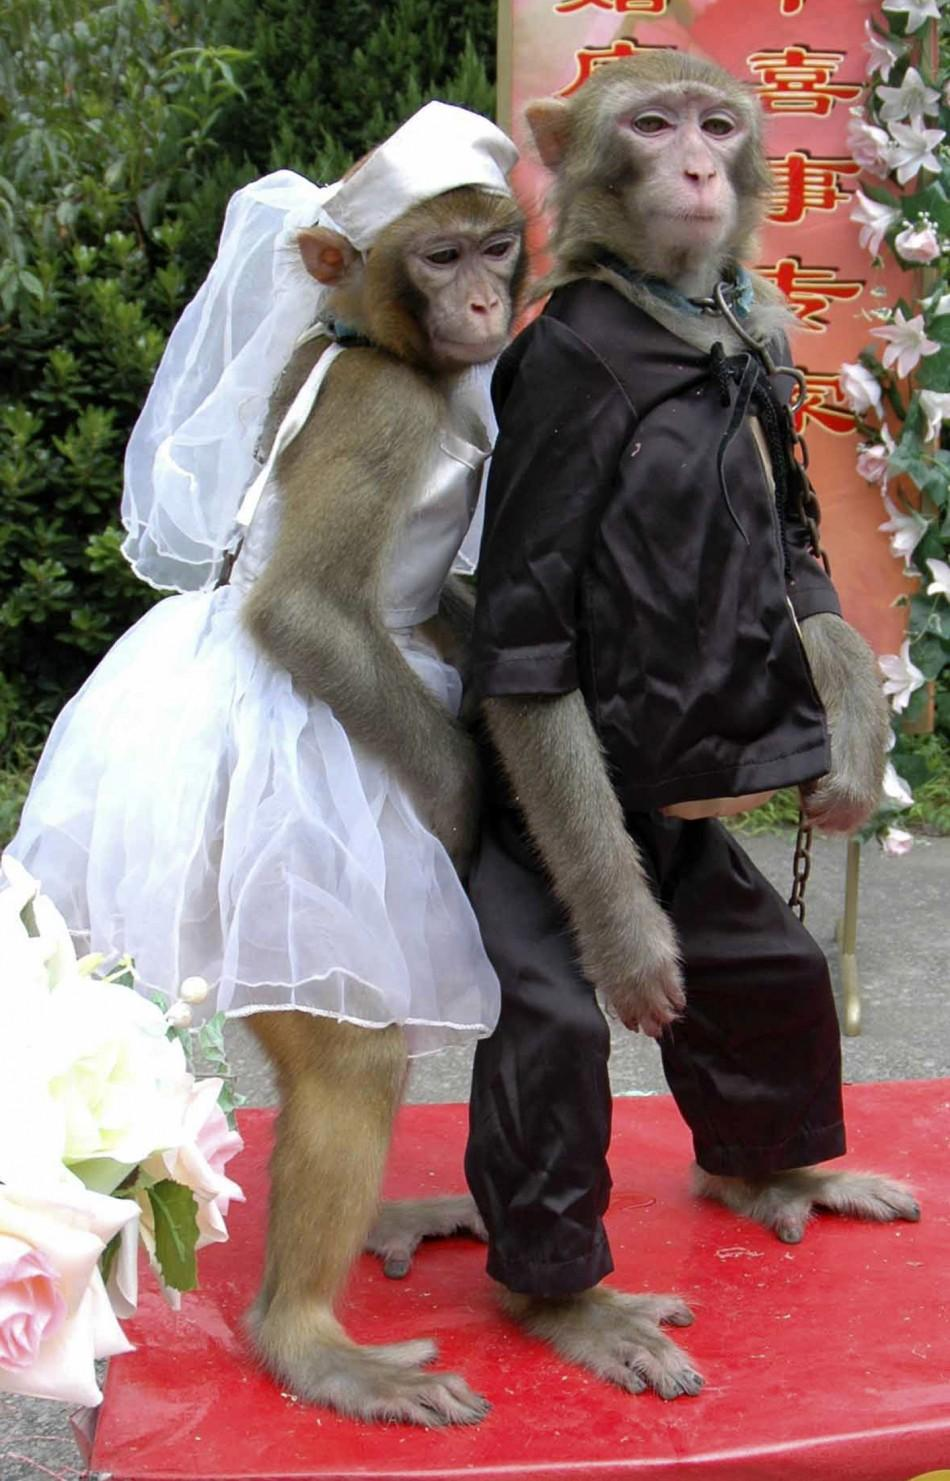 Male monkey and female monkey are seen during special wedding ceremony at zoo in Wenling